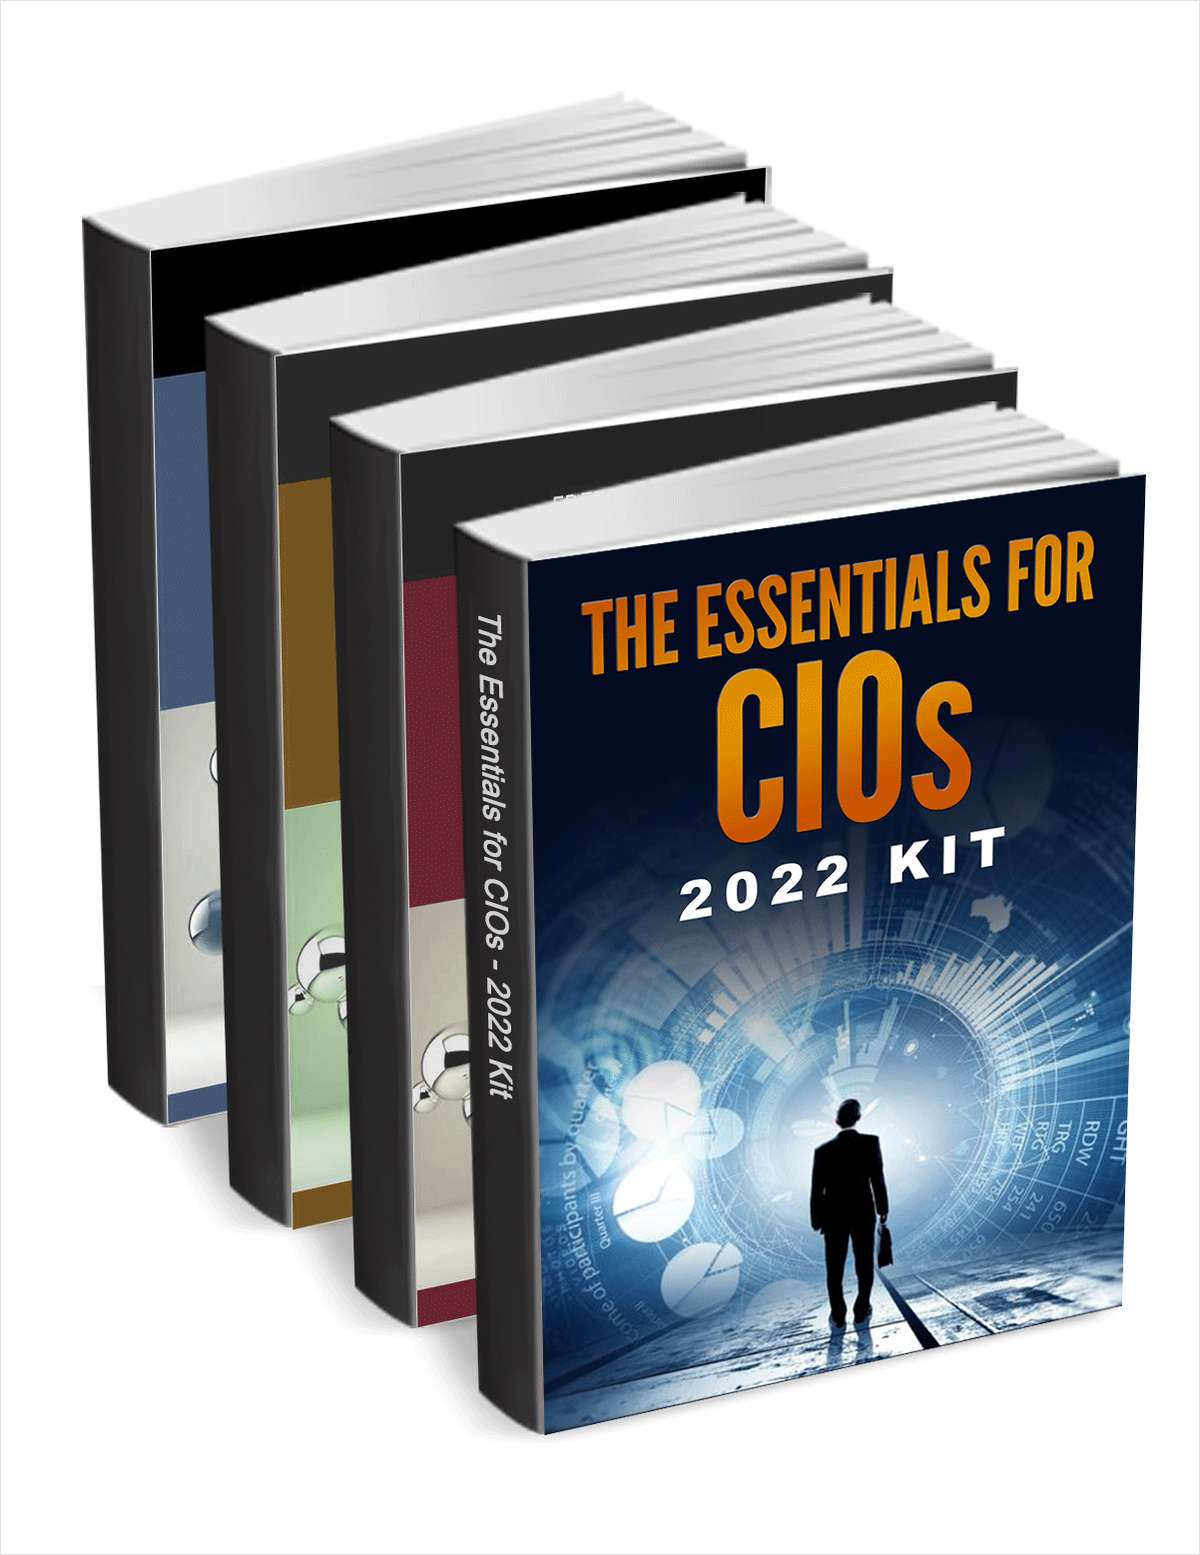 The Essentials for CIOs - November 2017 Kit